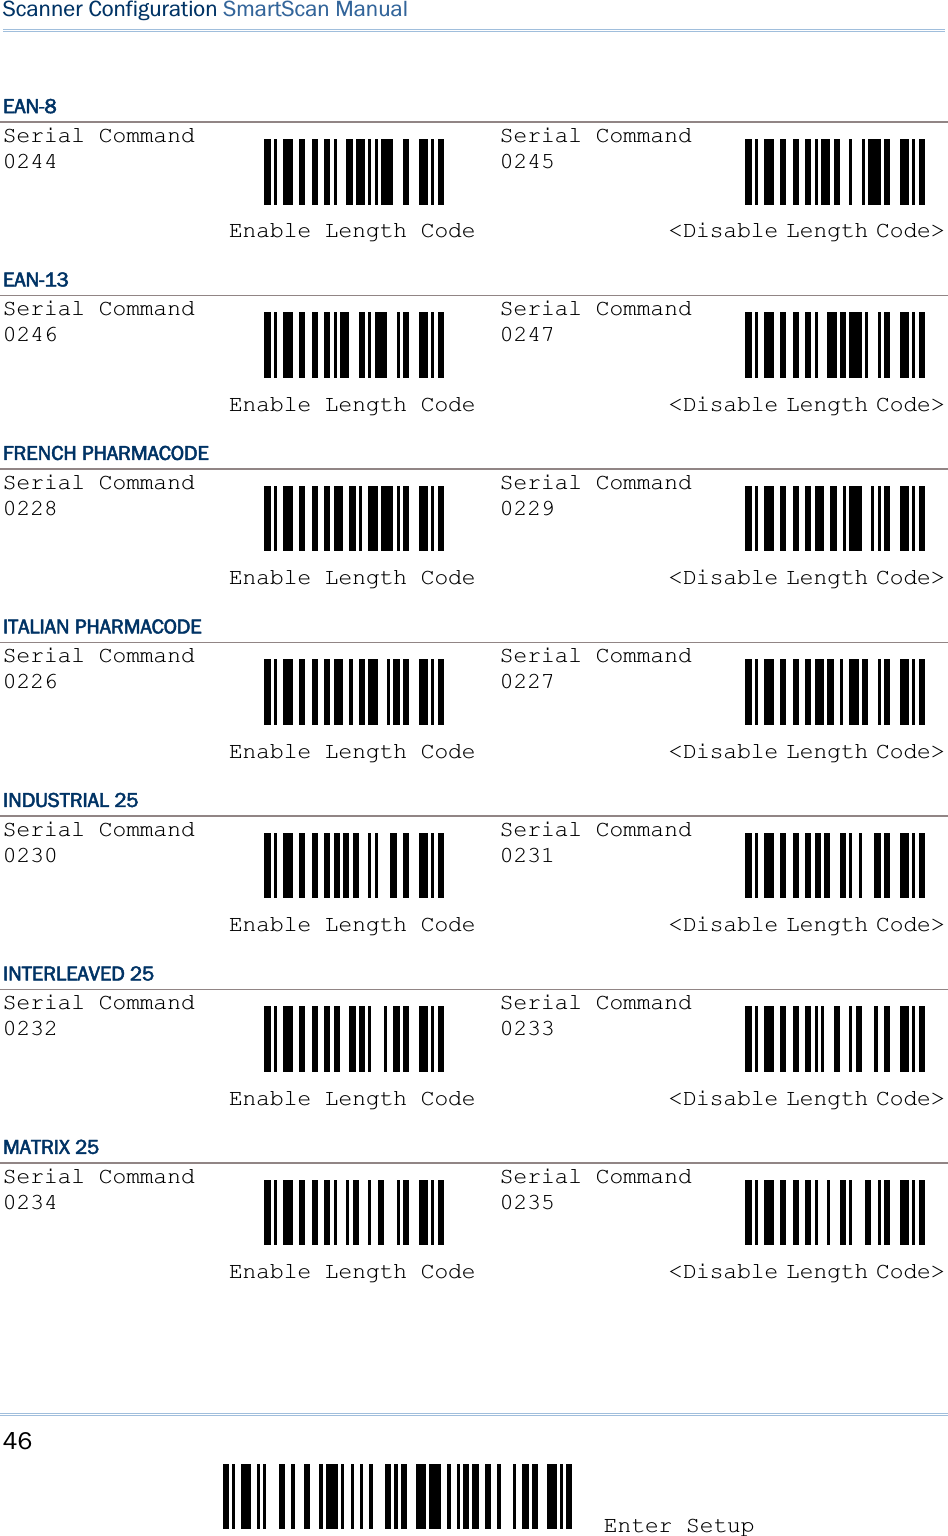 CipherLab 11662 Barcode Scanner Discussion and FAQ Scanner